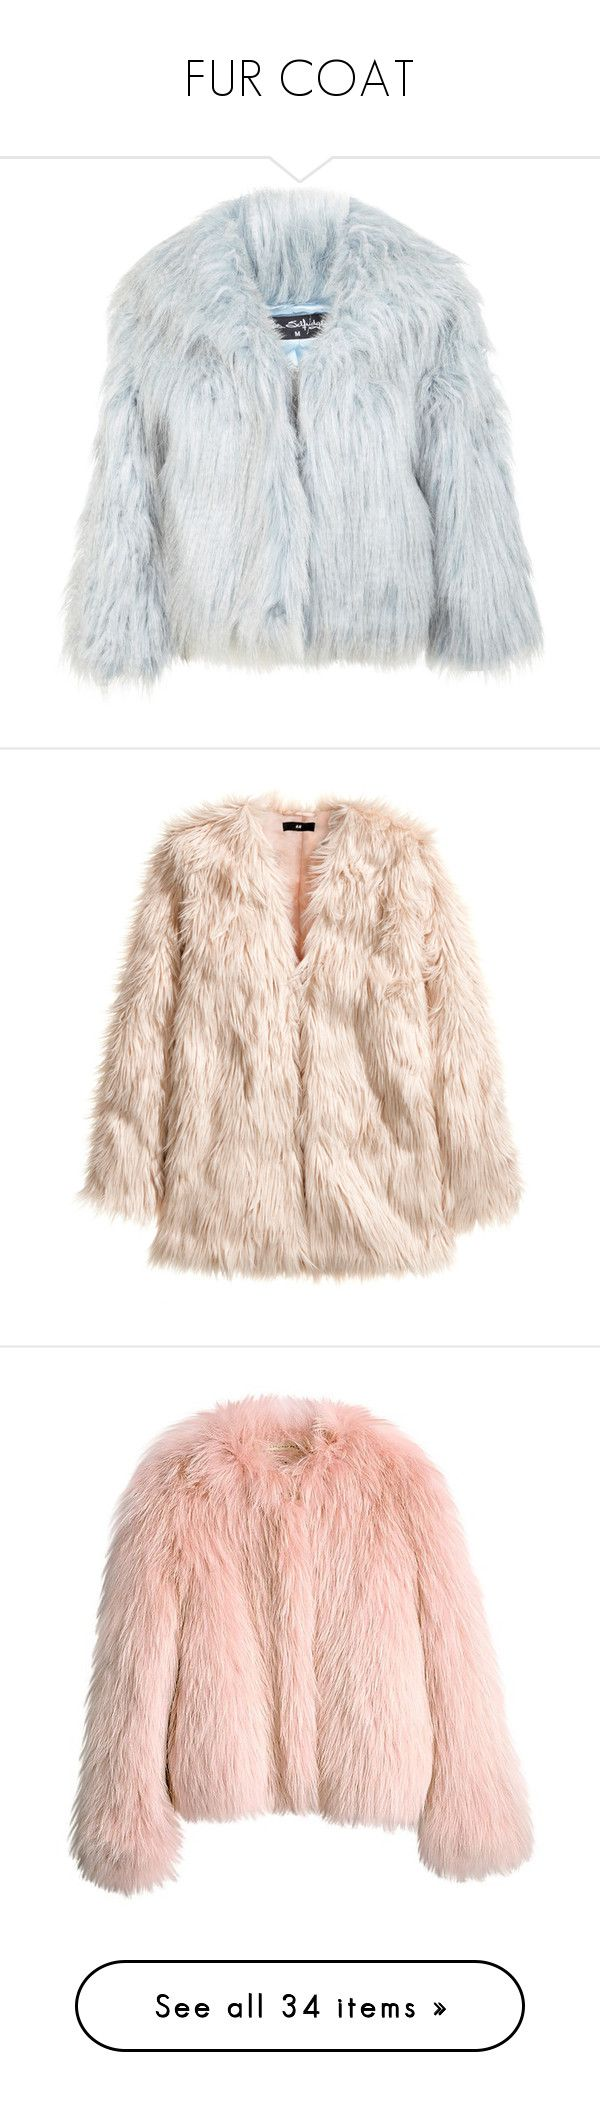 """FUR COAT"" by anabelle-grace ❤ liked on Polyvore featuring outerwear, coats, jackets, fur, blue, imitation fur coats, miss selfridge, cropped faux fur coat, fake fur coat and blue faux fur coat"